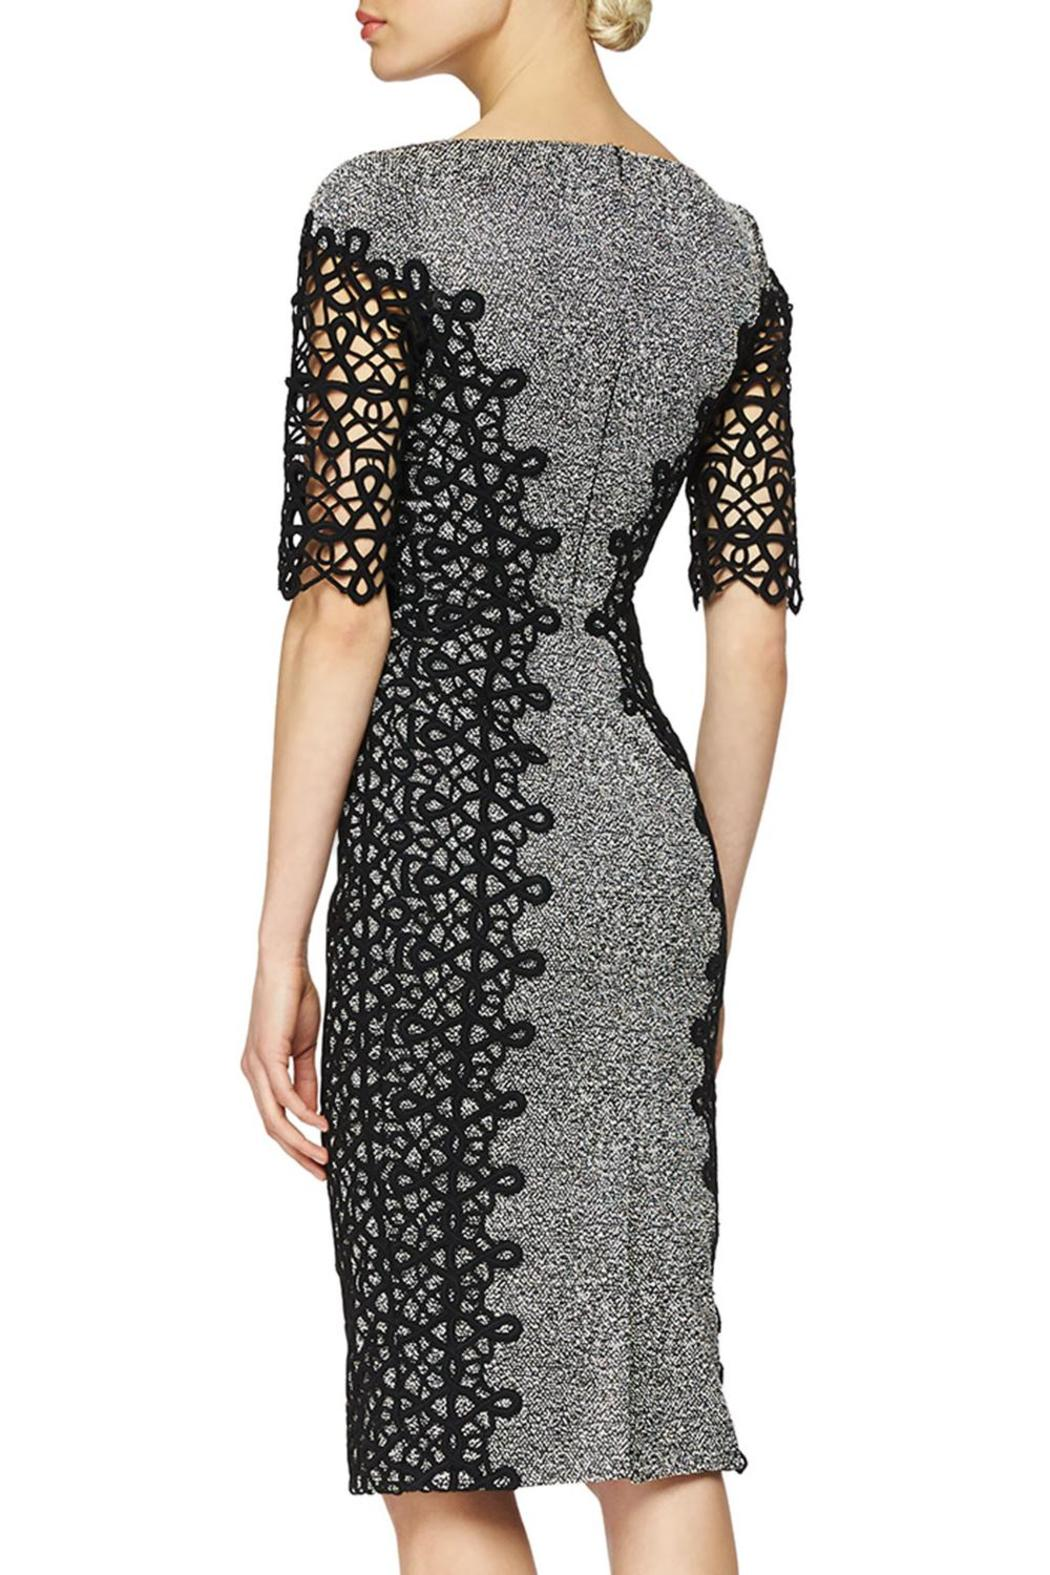 Lela Rose  Lace Placed Dress - Front Full Image